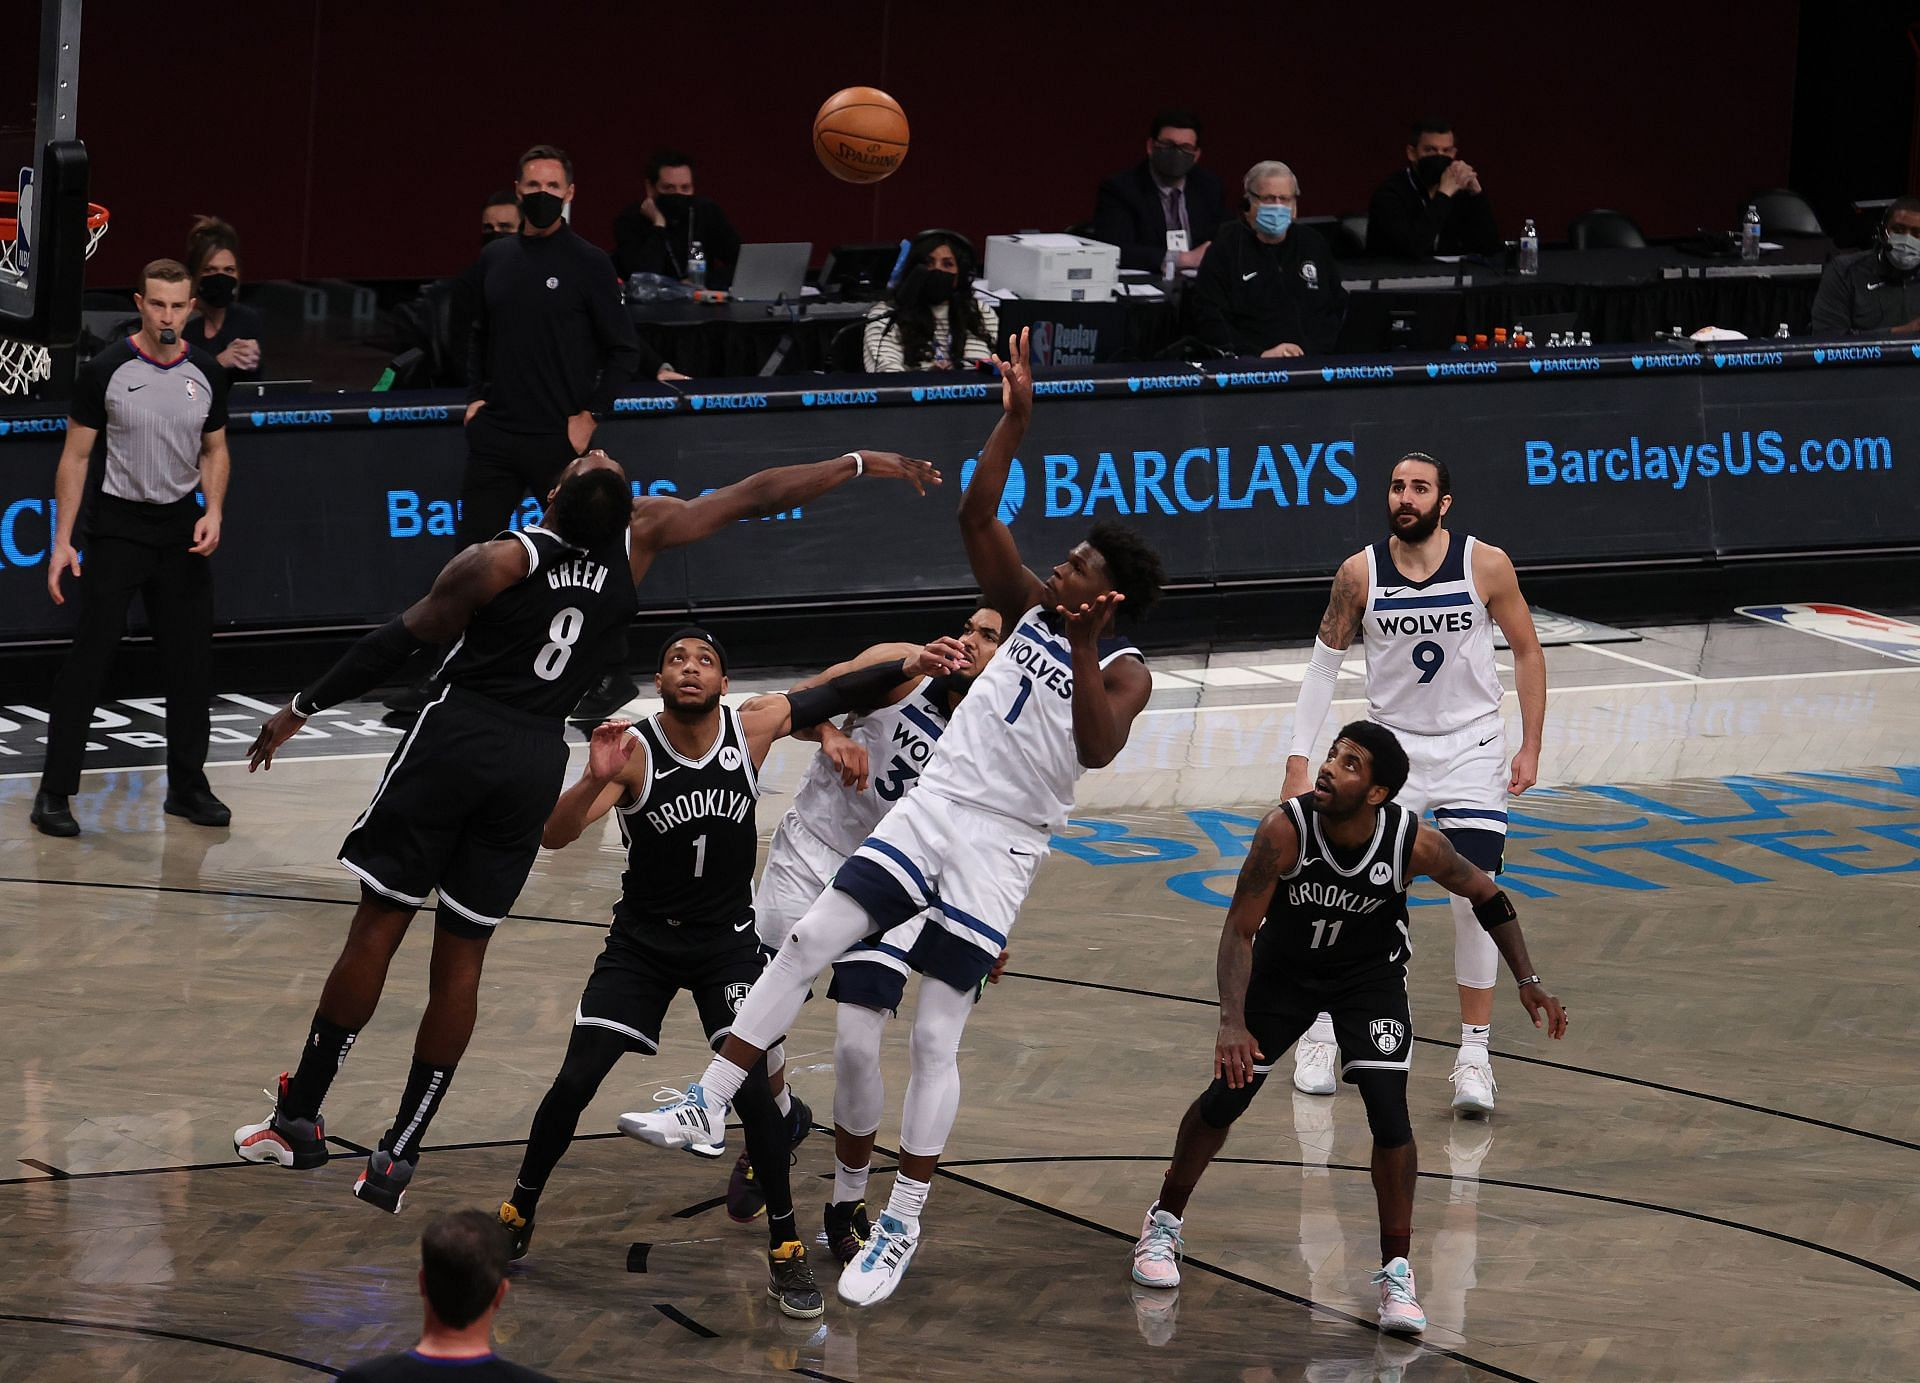 The Minnesota Timberwolves and the Brooklyn Nets will square off in an exhibition game at the Barclays Center on Thursday